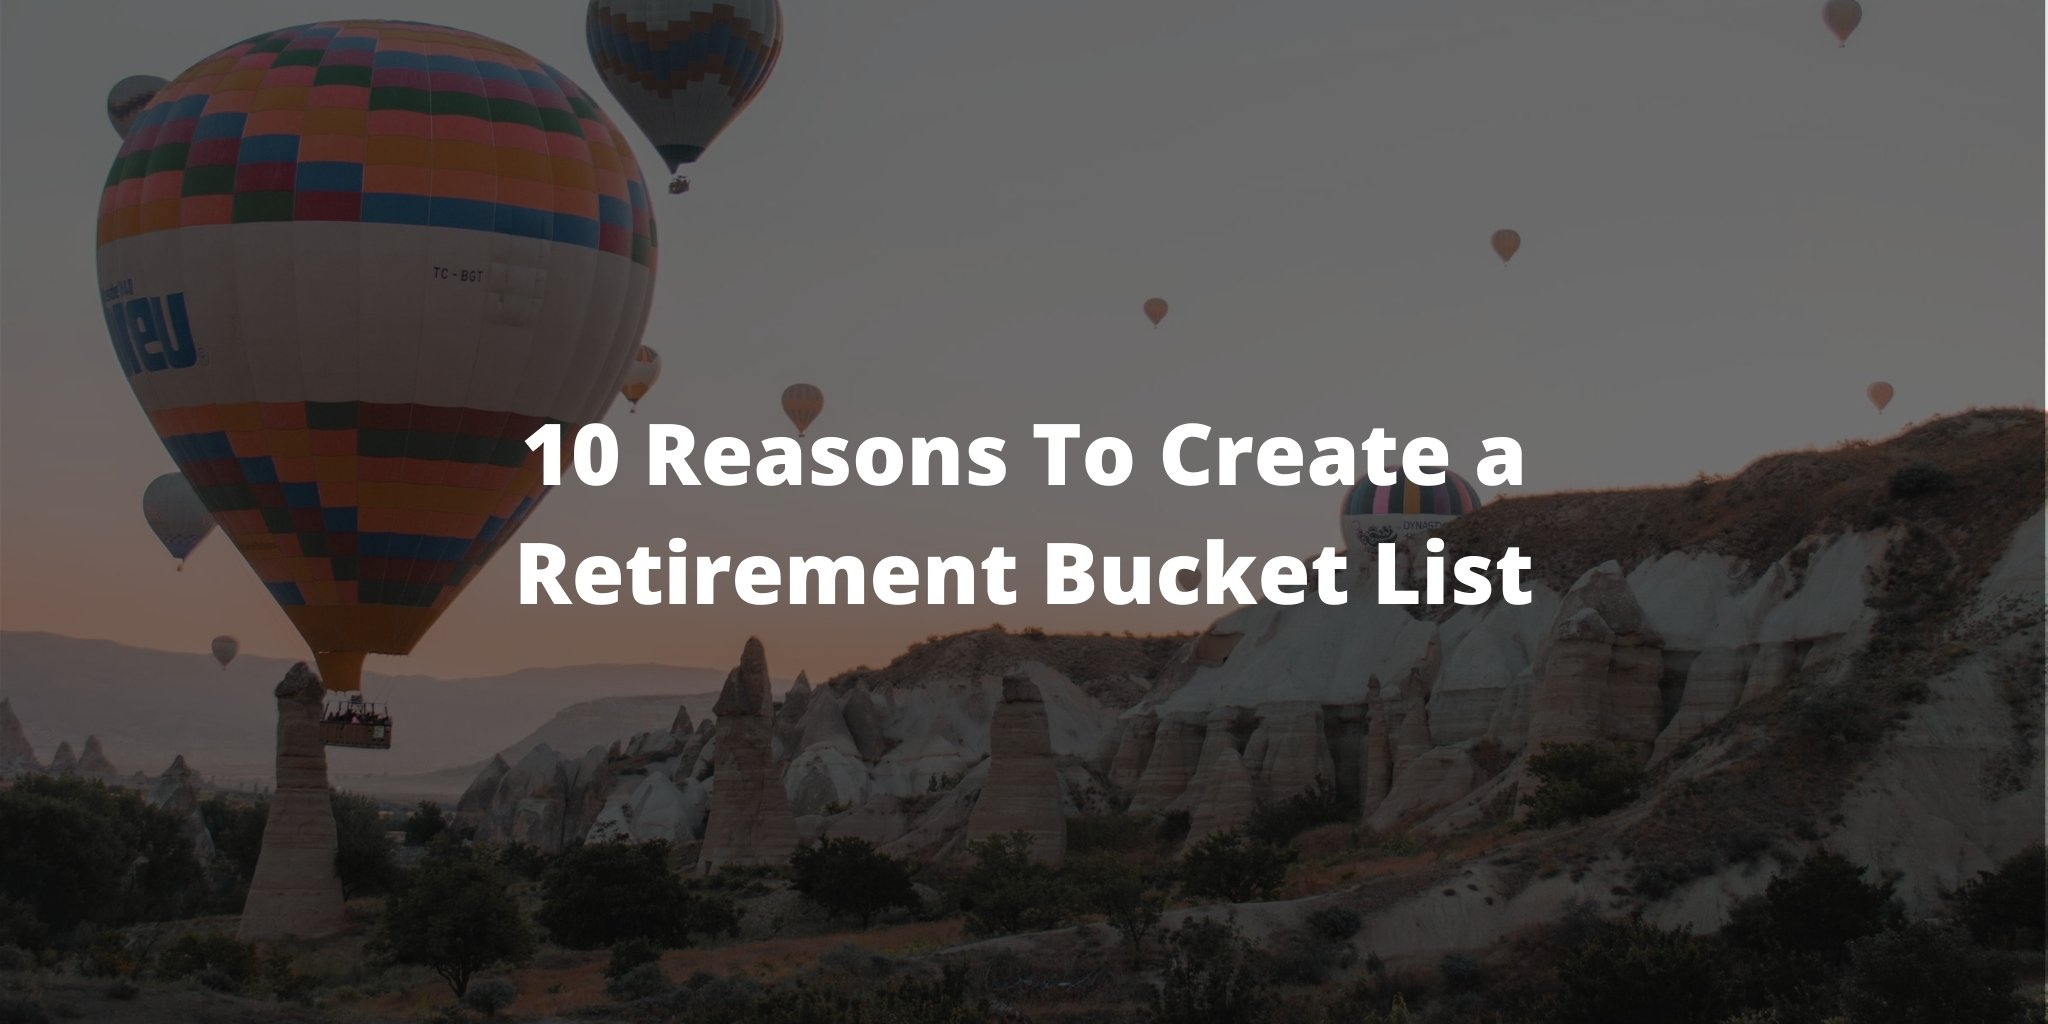 10 Reasons To Create a Retirement Bucket List